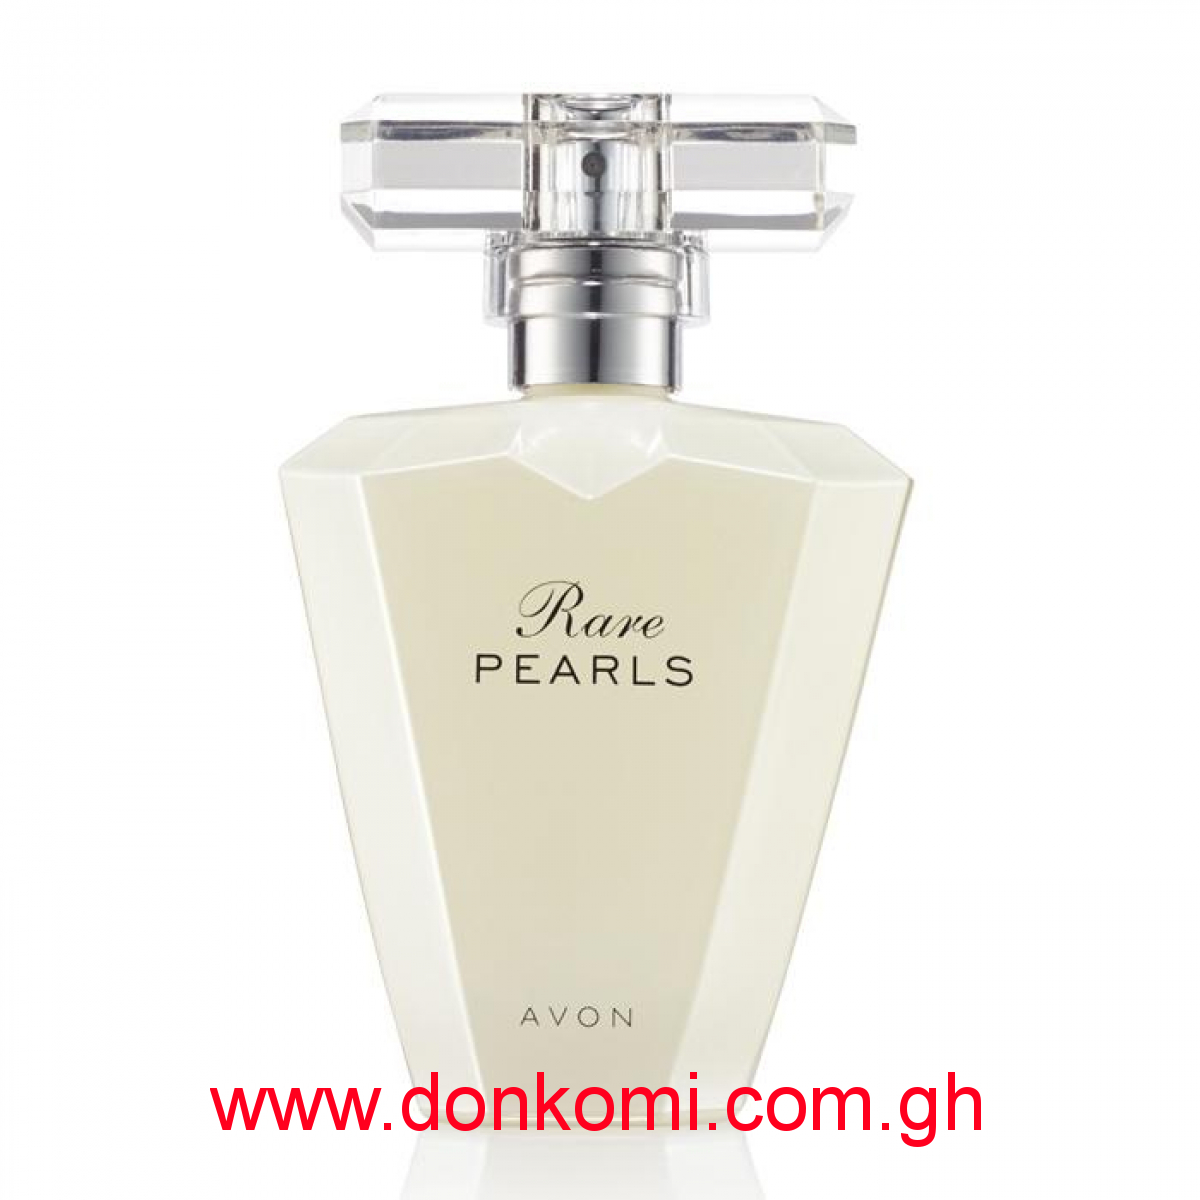 Avon Rare Pearls Perfume Available